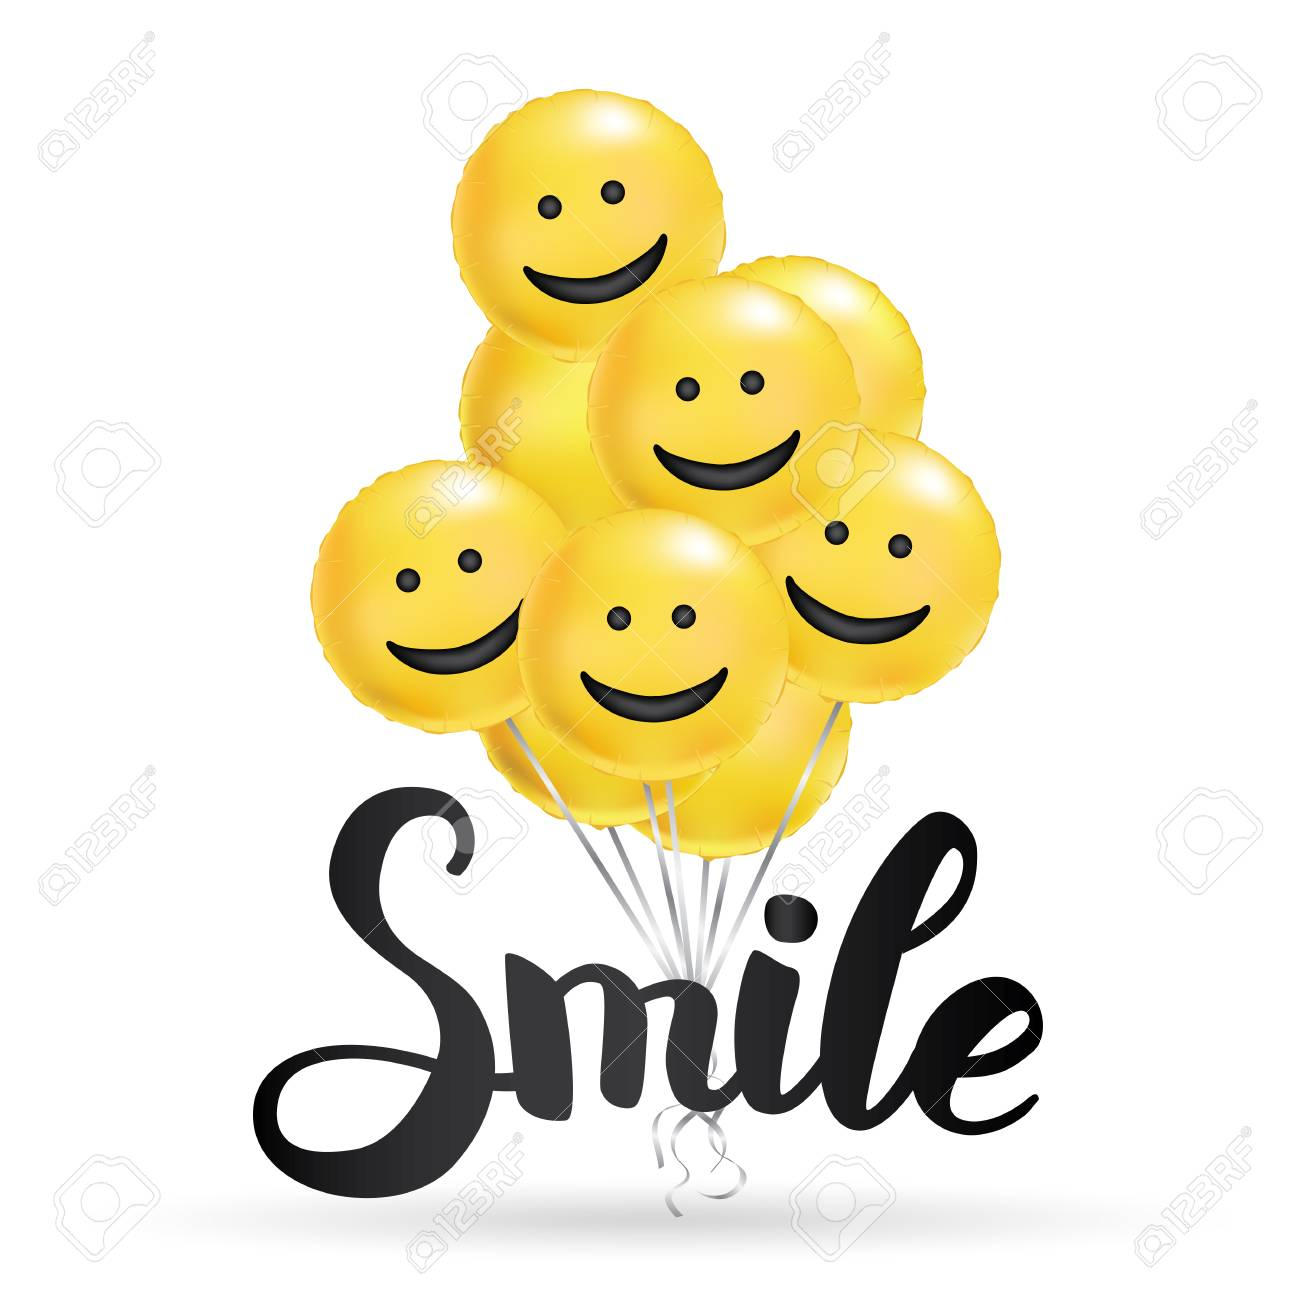 Smile yellow balloons background. Fun character people, bright balloon. Smiley, Funny friends. Comic text, humor message, Greeting card, motivation design, Laughing face. Positive mood poster banner - 92434242